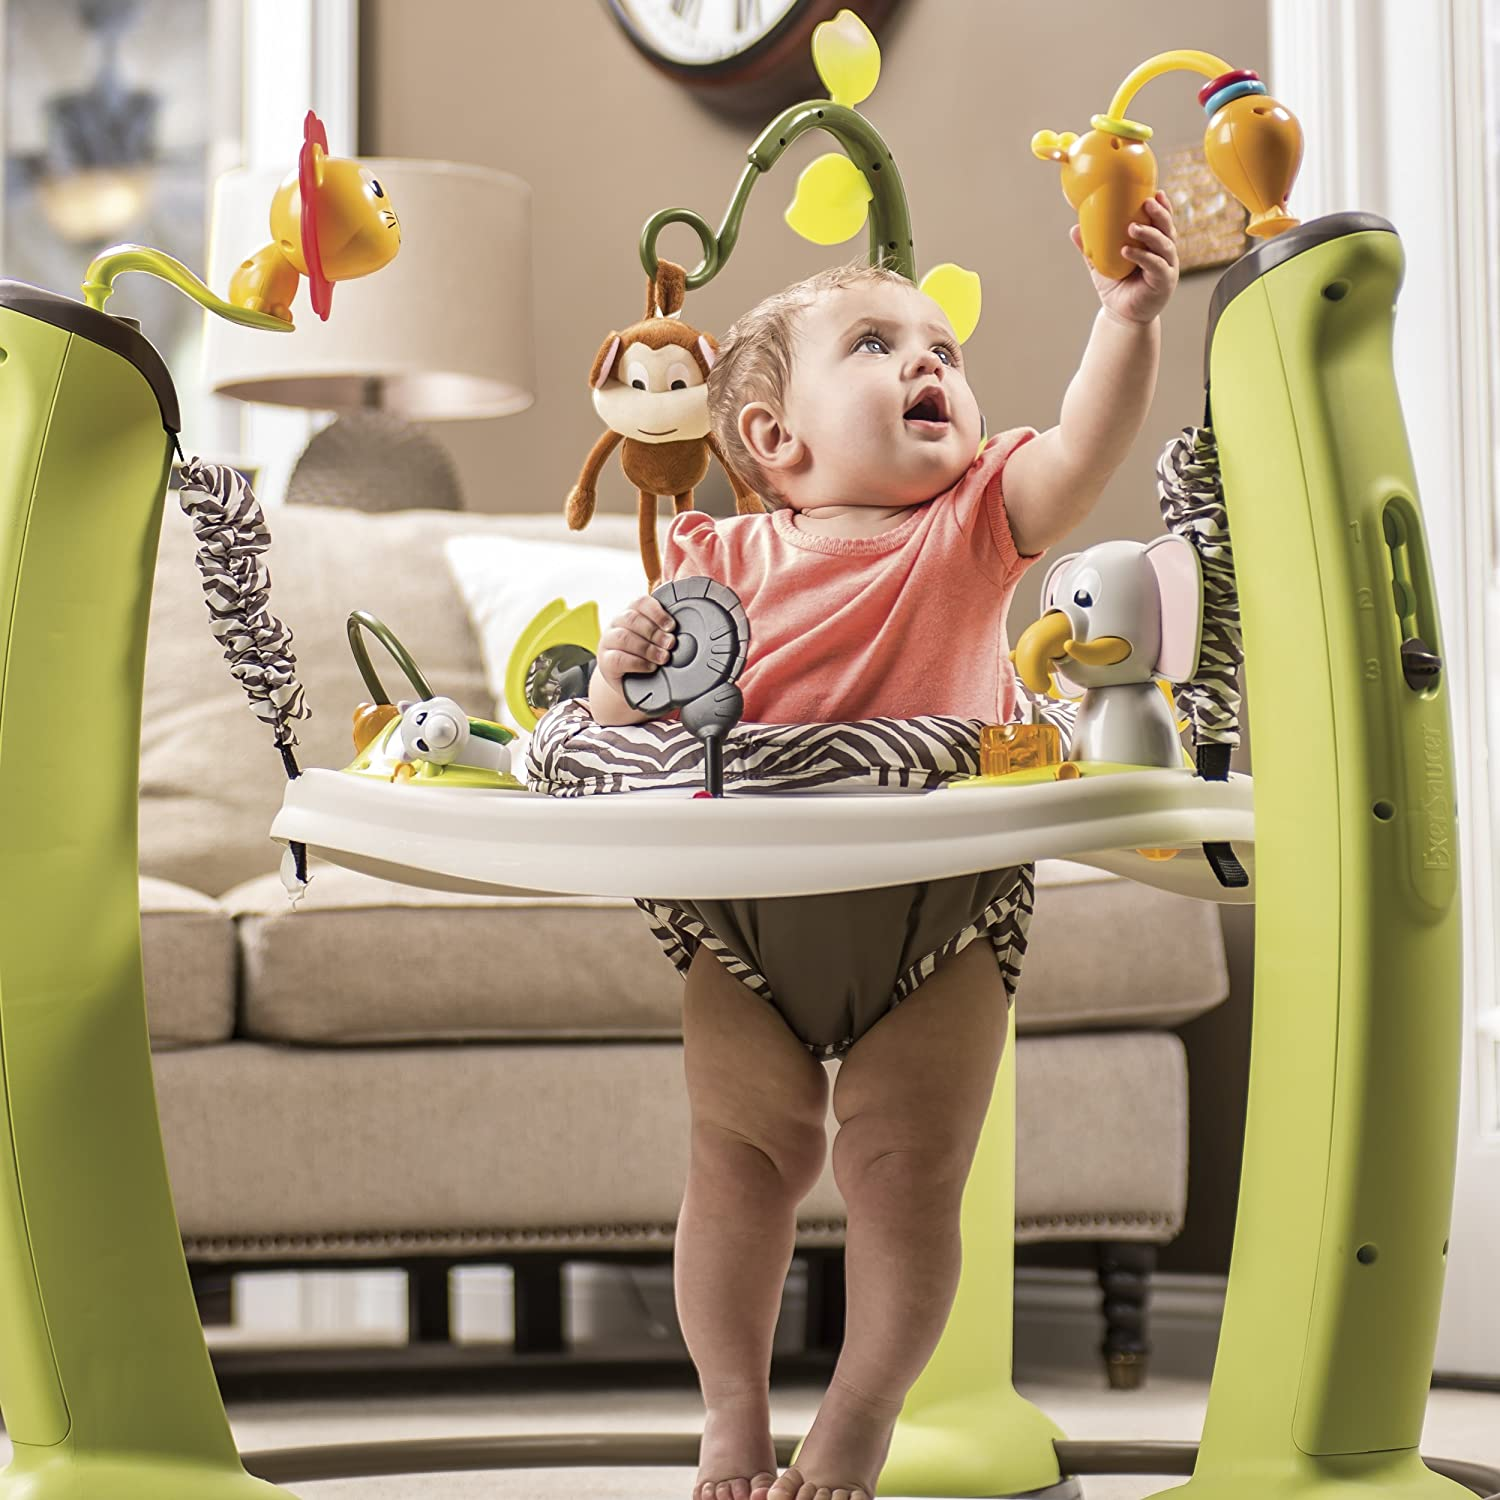 045ee2729 Amazon.com   Evenflo ExerSaucer Jump and Learn Jumper